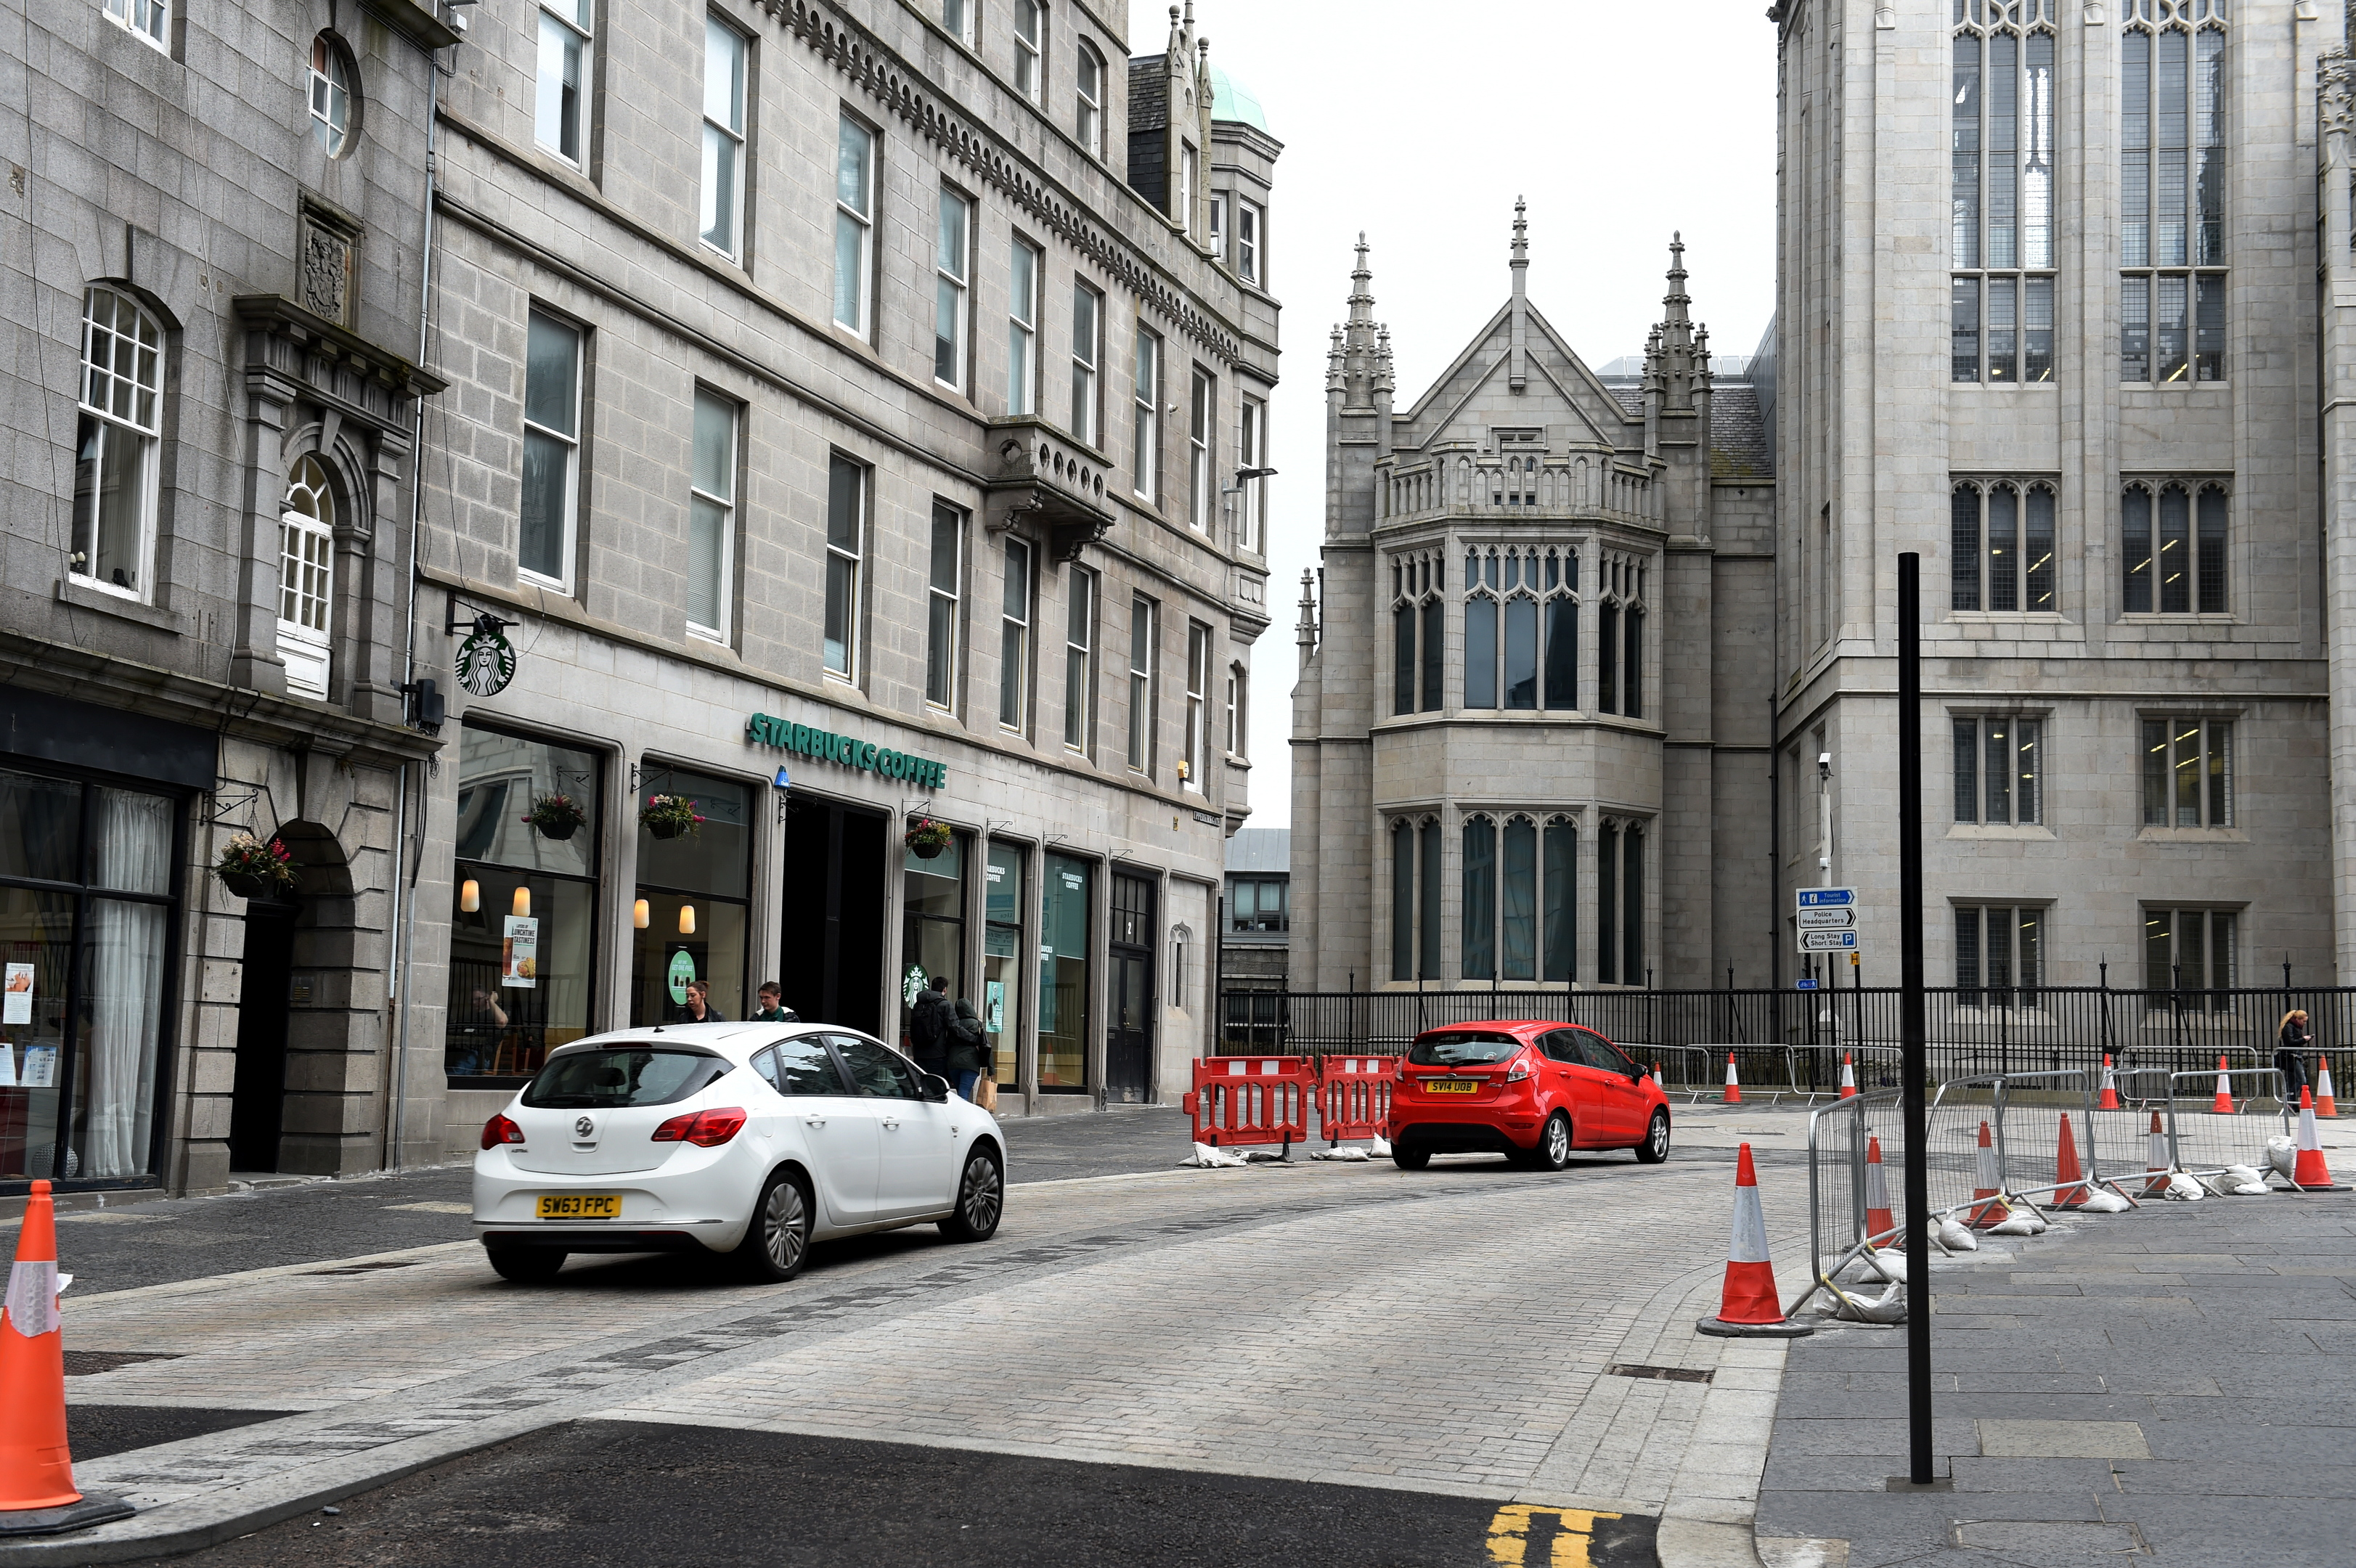 A new mini-roundabout at Upperkirkgate has caused signage concerns